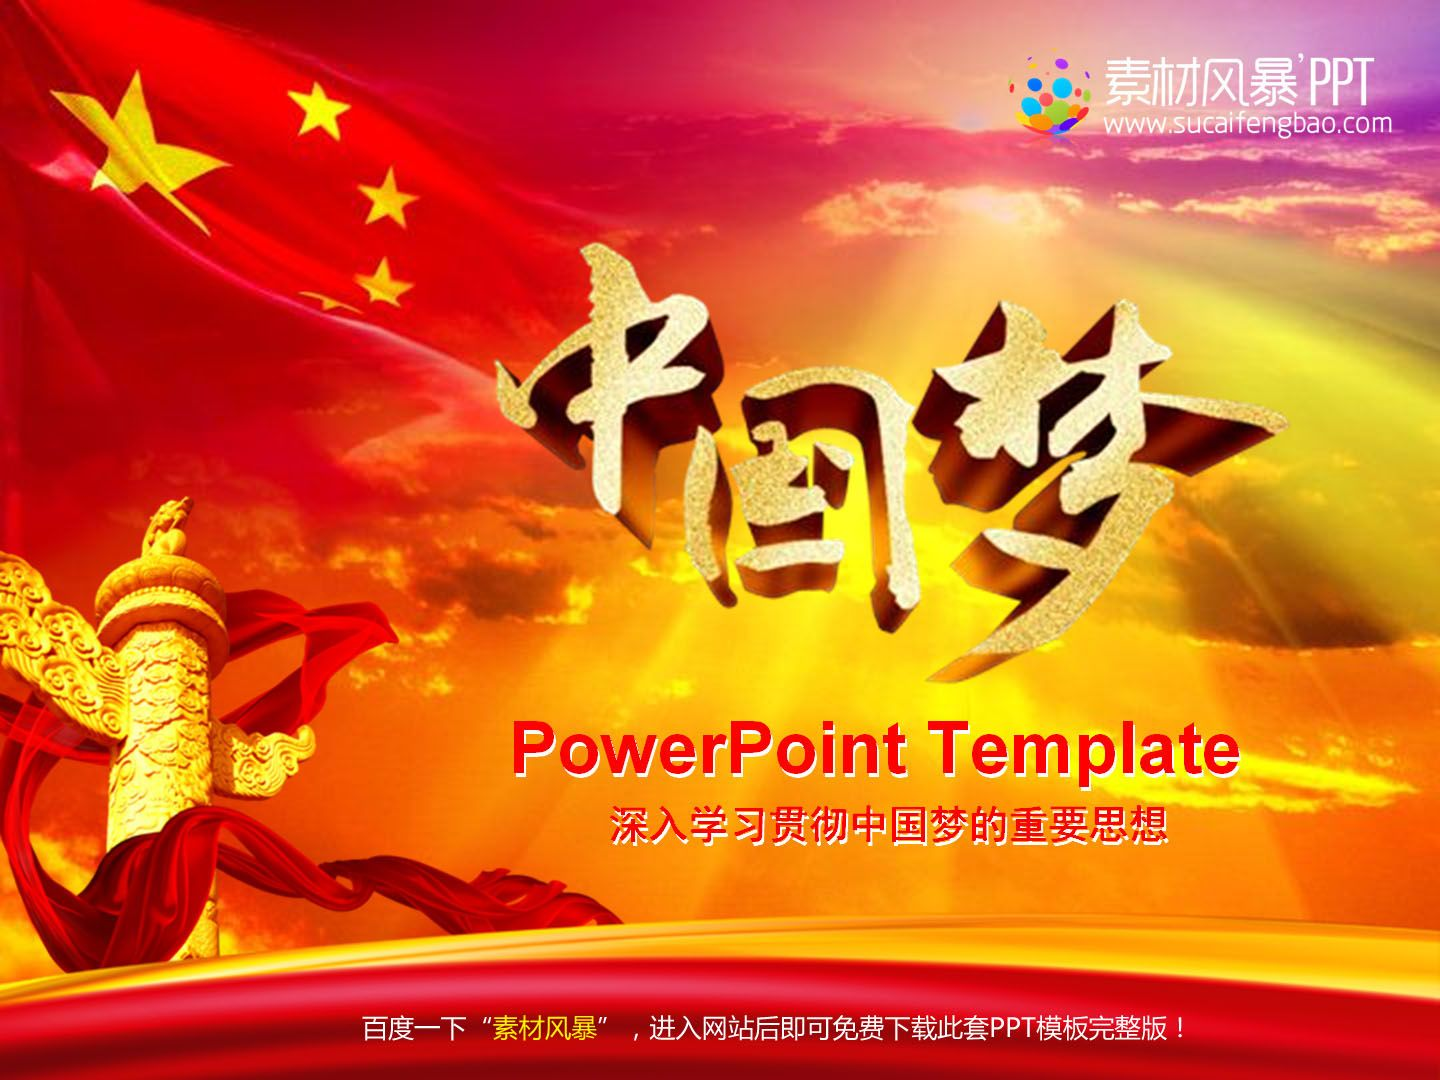 China dream ppt templates free download ppt background picture china dream ppt templates free download ppt background picture ppt china dream ppt dynamic toneelgroepblik Image collections